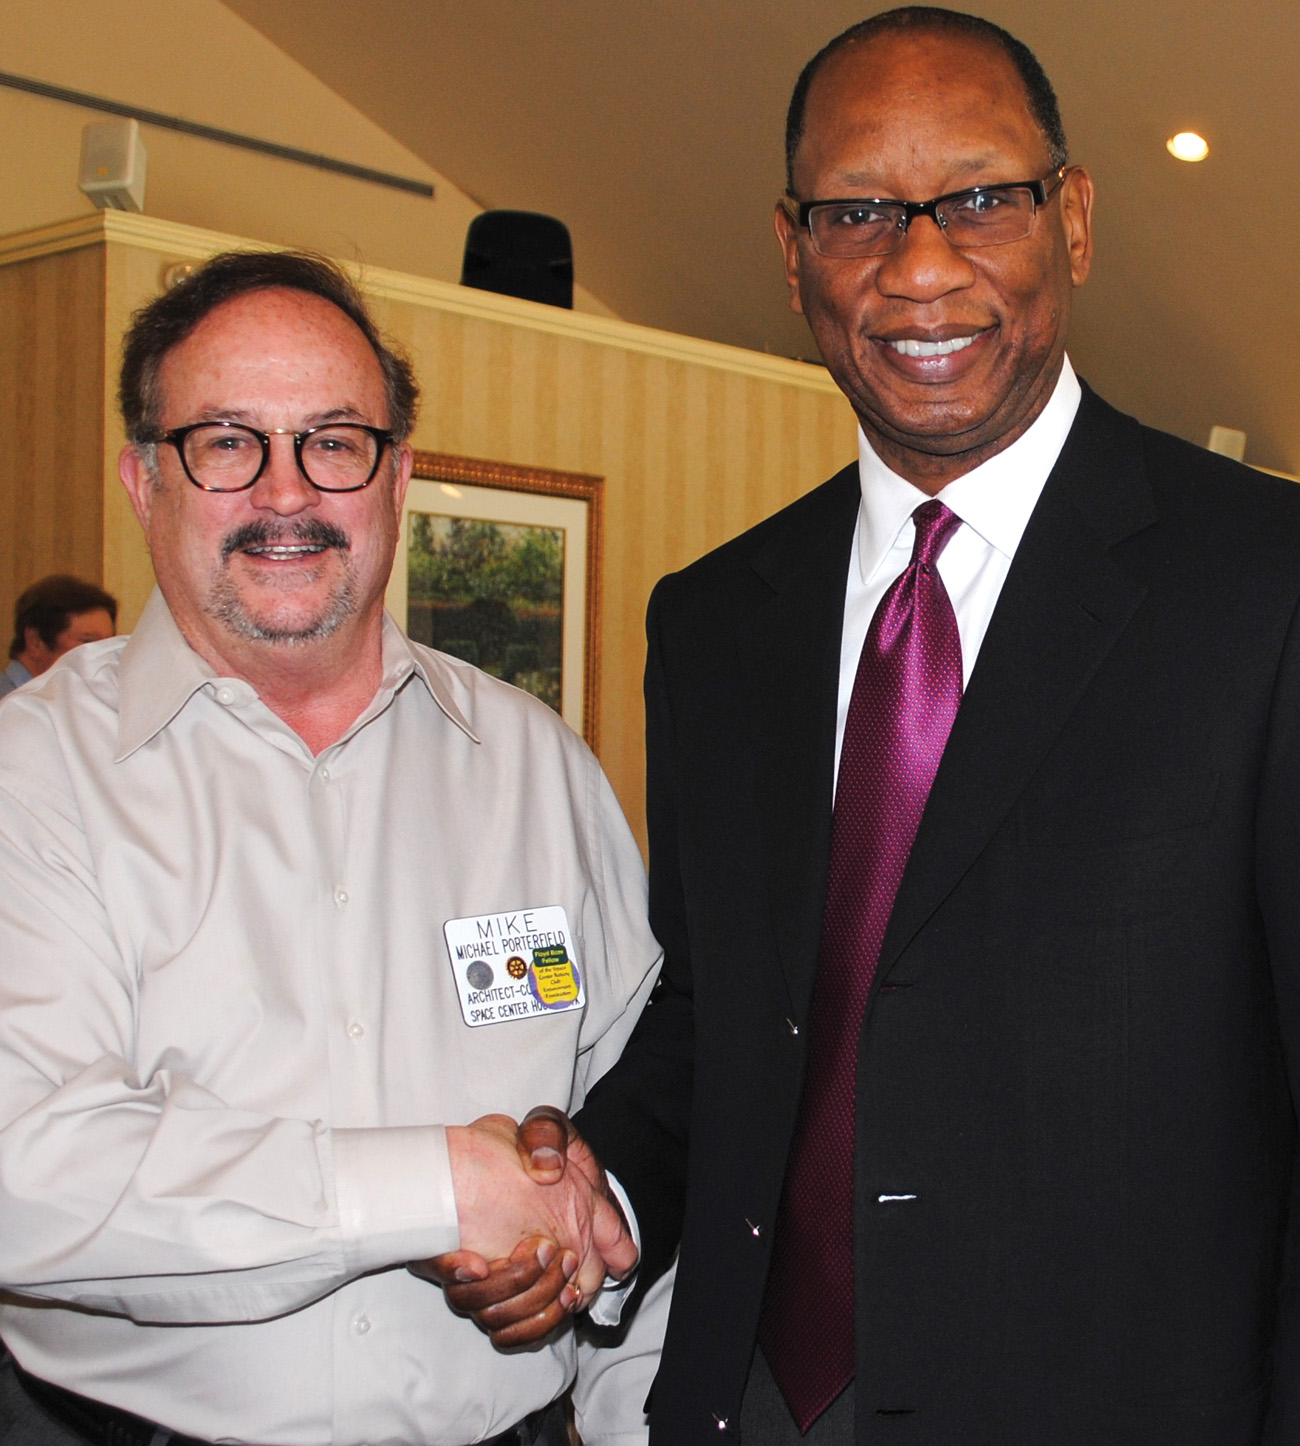 Architect Michael Porterfield, left, welcomes attorney Ben Hall and recent Houston mayoral candidate to the Space Center Rotary luncheon featuring a talk on high speed rail by Judge Robert Eckels. Photo by Mary Alys Cherry